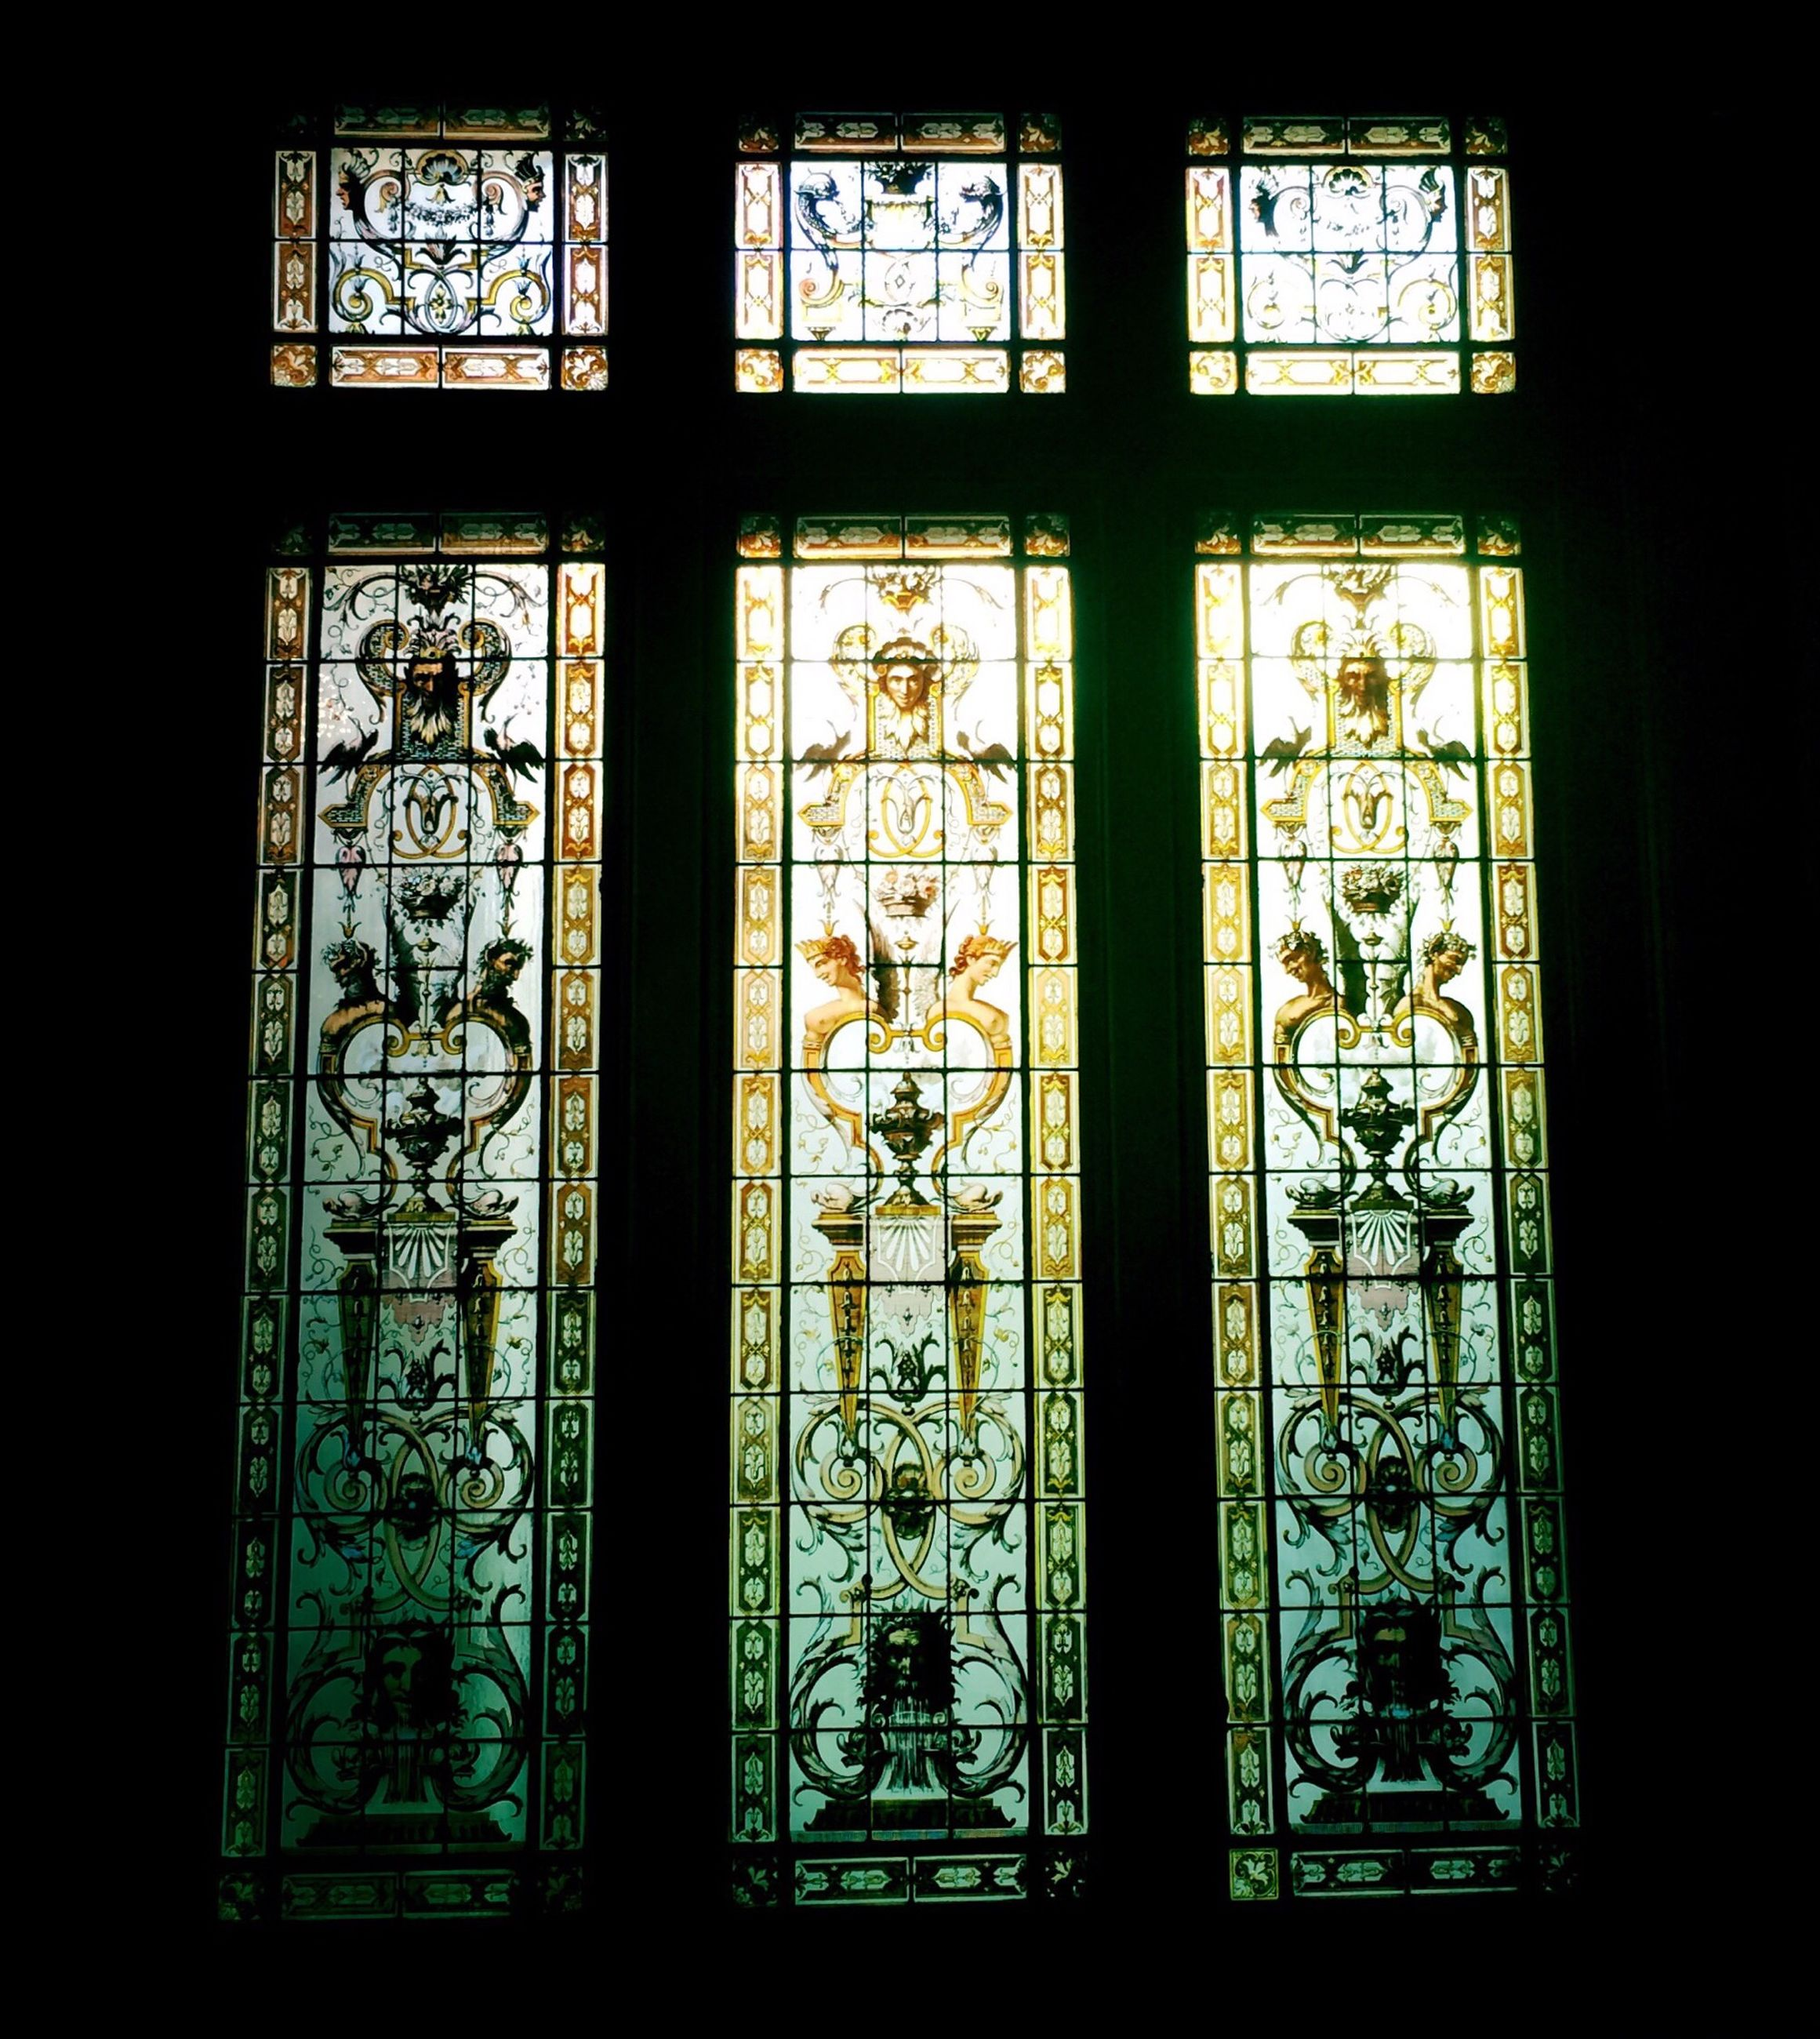 indoors, window, glass - material, transparent, stained glass, architecture, built structure, design, pattern, home interior, church, closed, no people, dark, religion, glass, ornate, day, door, house